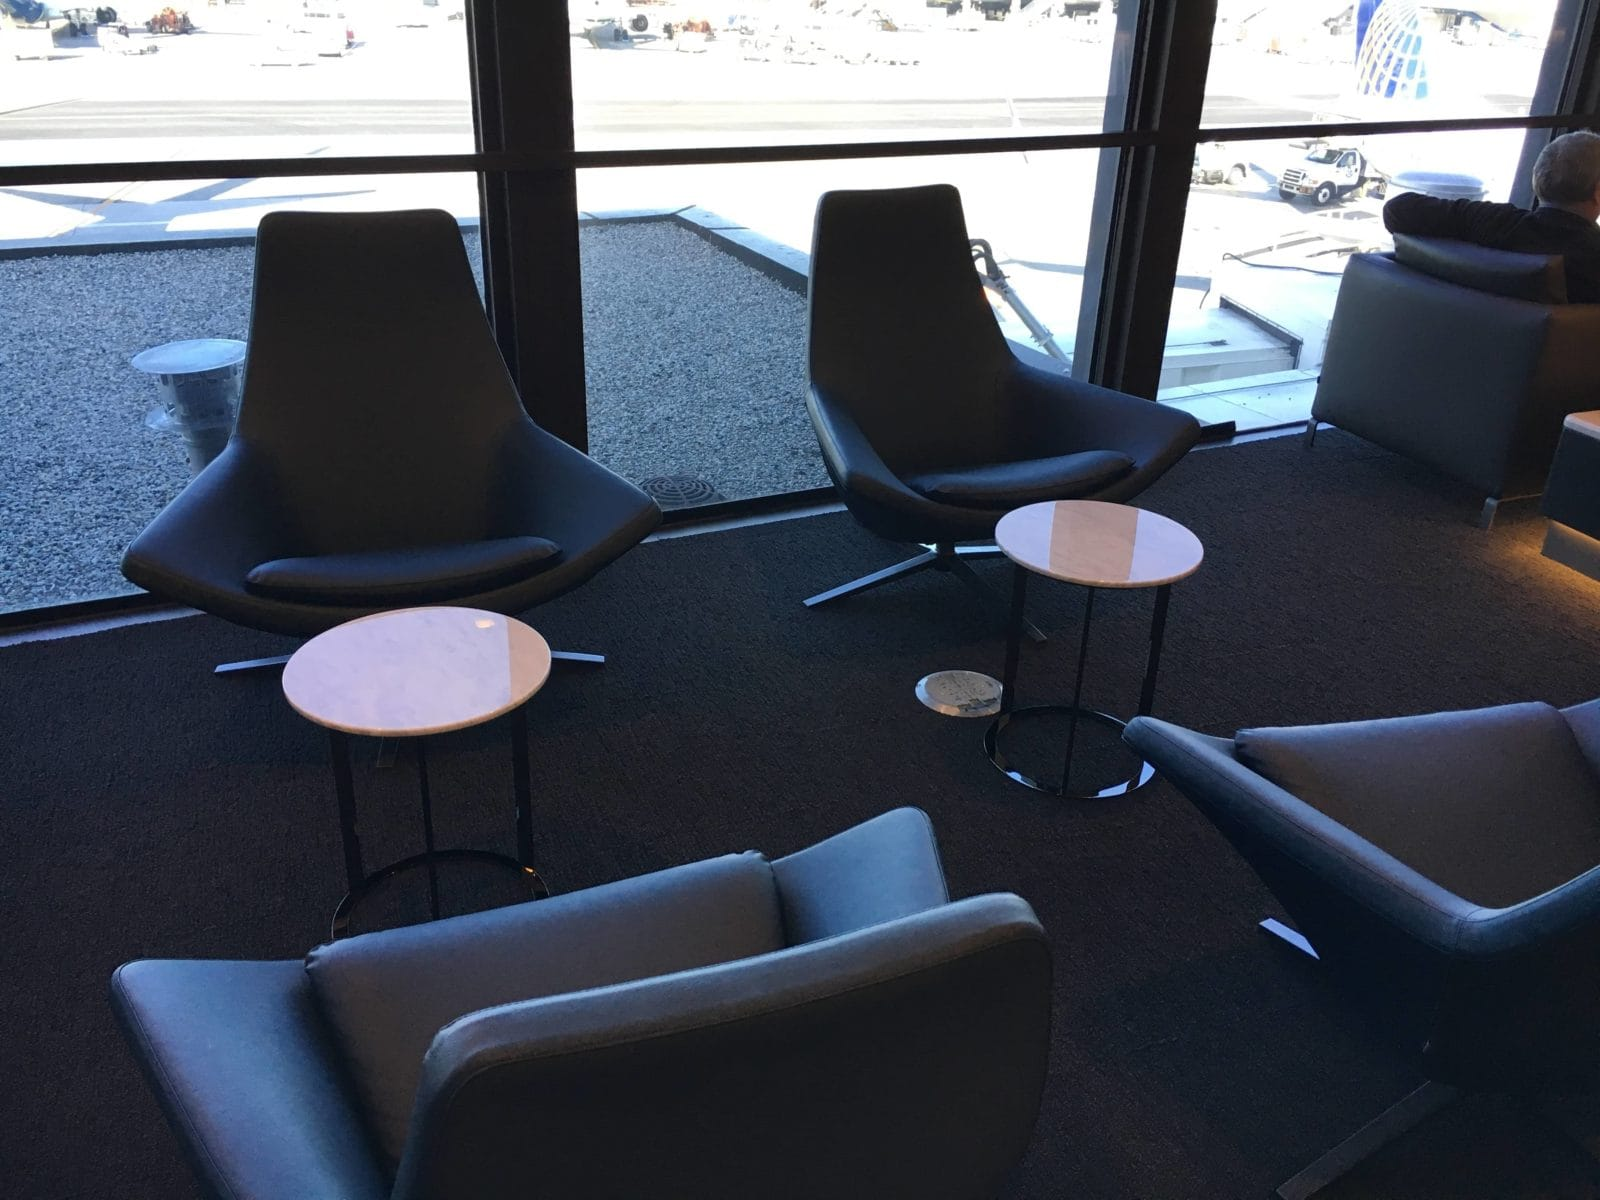 United Polaris Lounge LAX - 2er Sitzgruppe